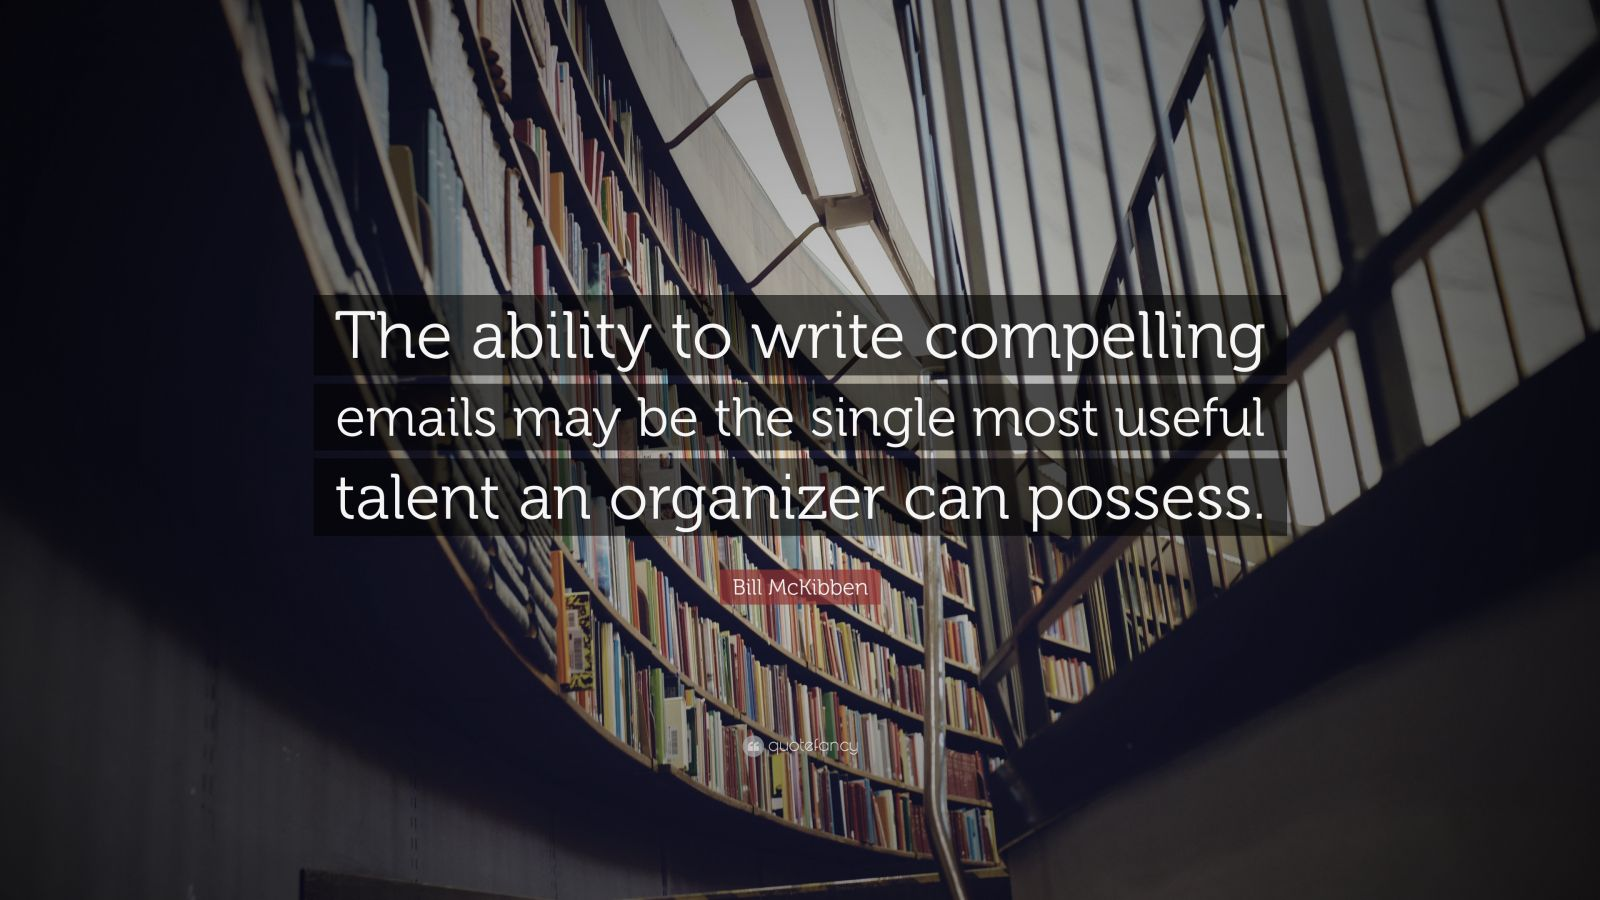 """Bill McKibben Quote: """"The ability to write compelling emails may be the single most useful talent an organizer can possess."""""""